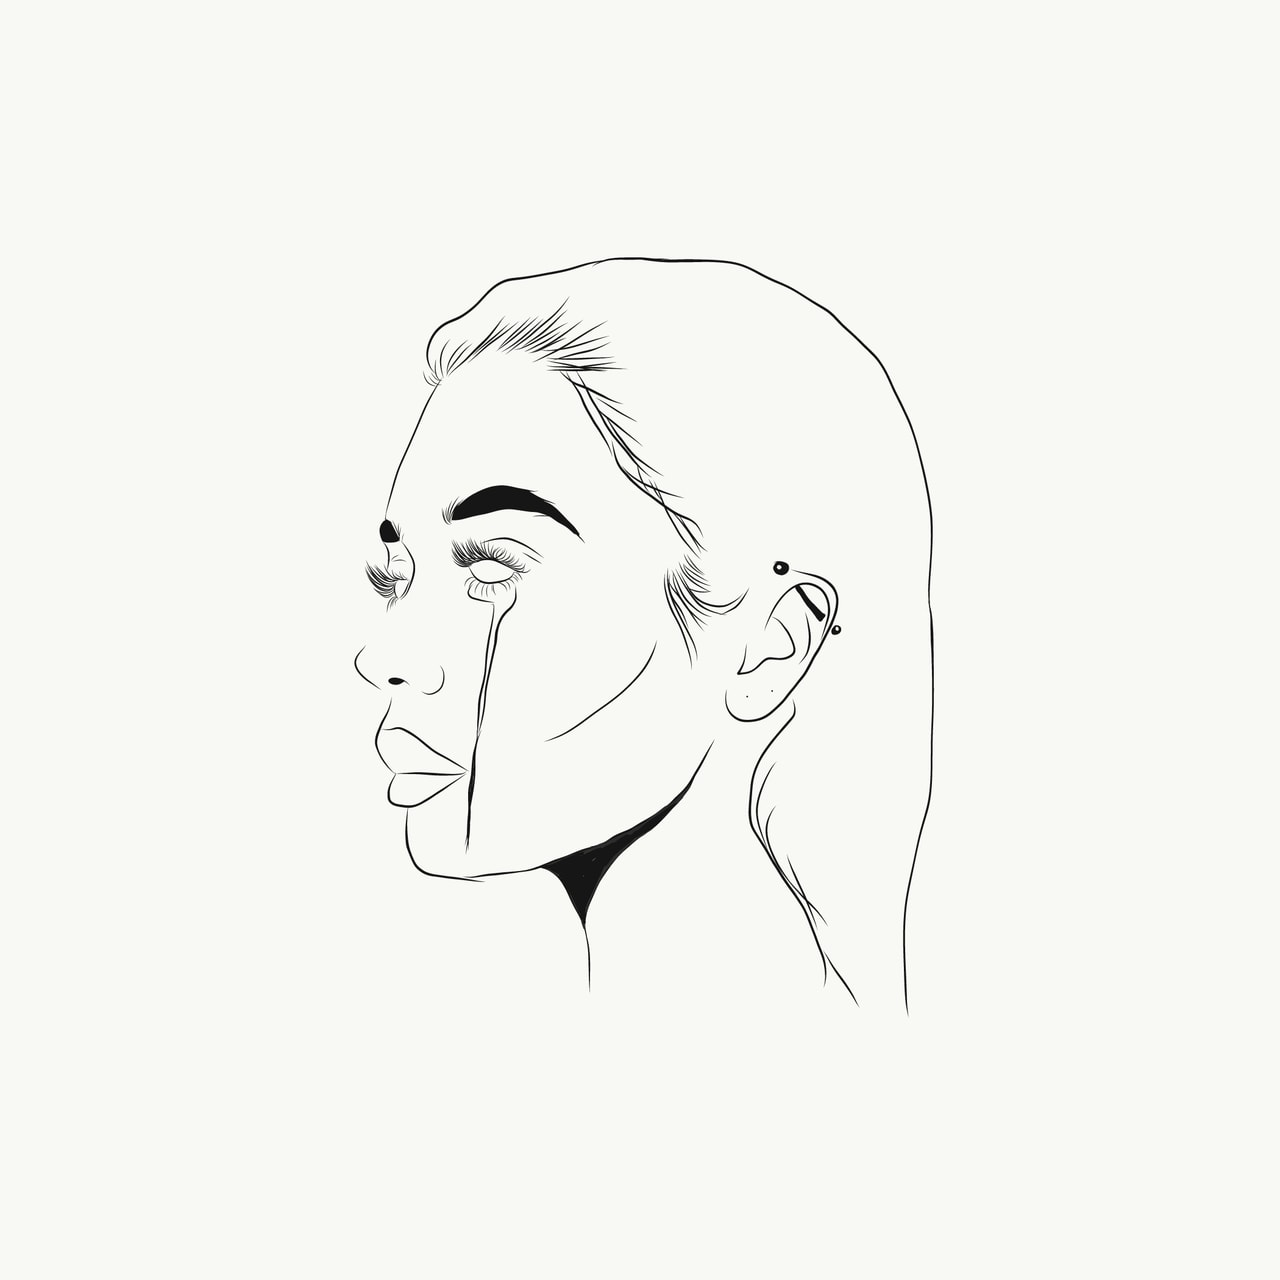 draw, outlines, outline and girl outline